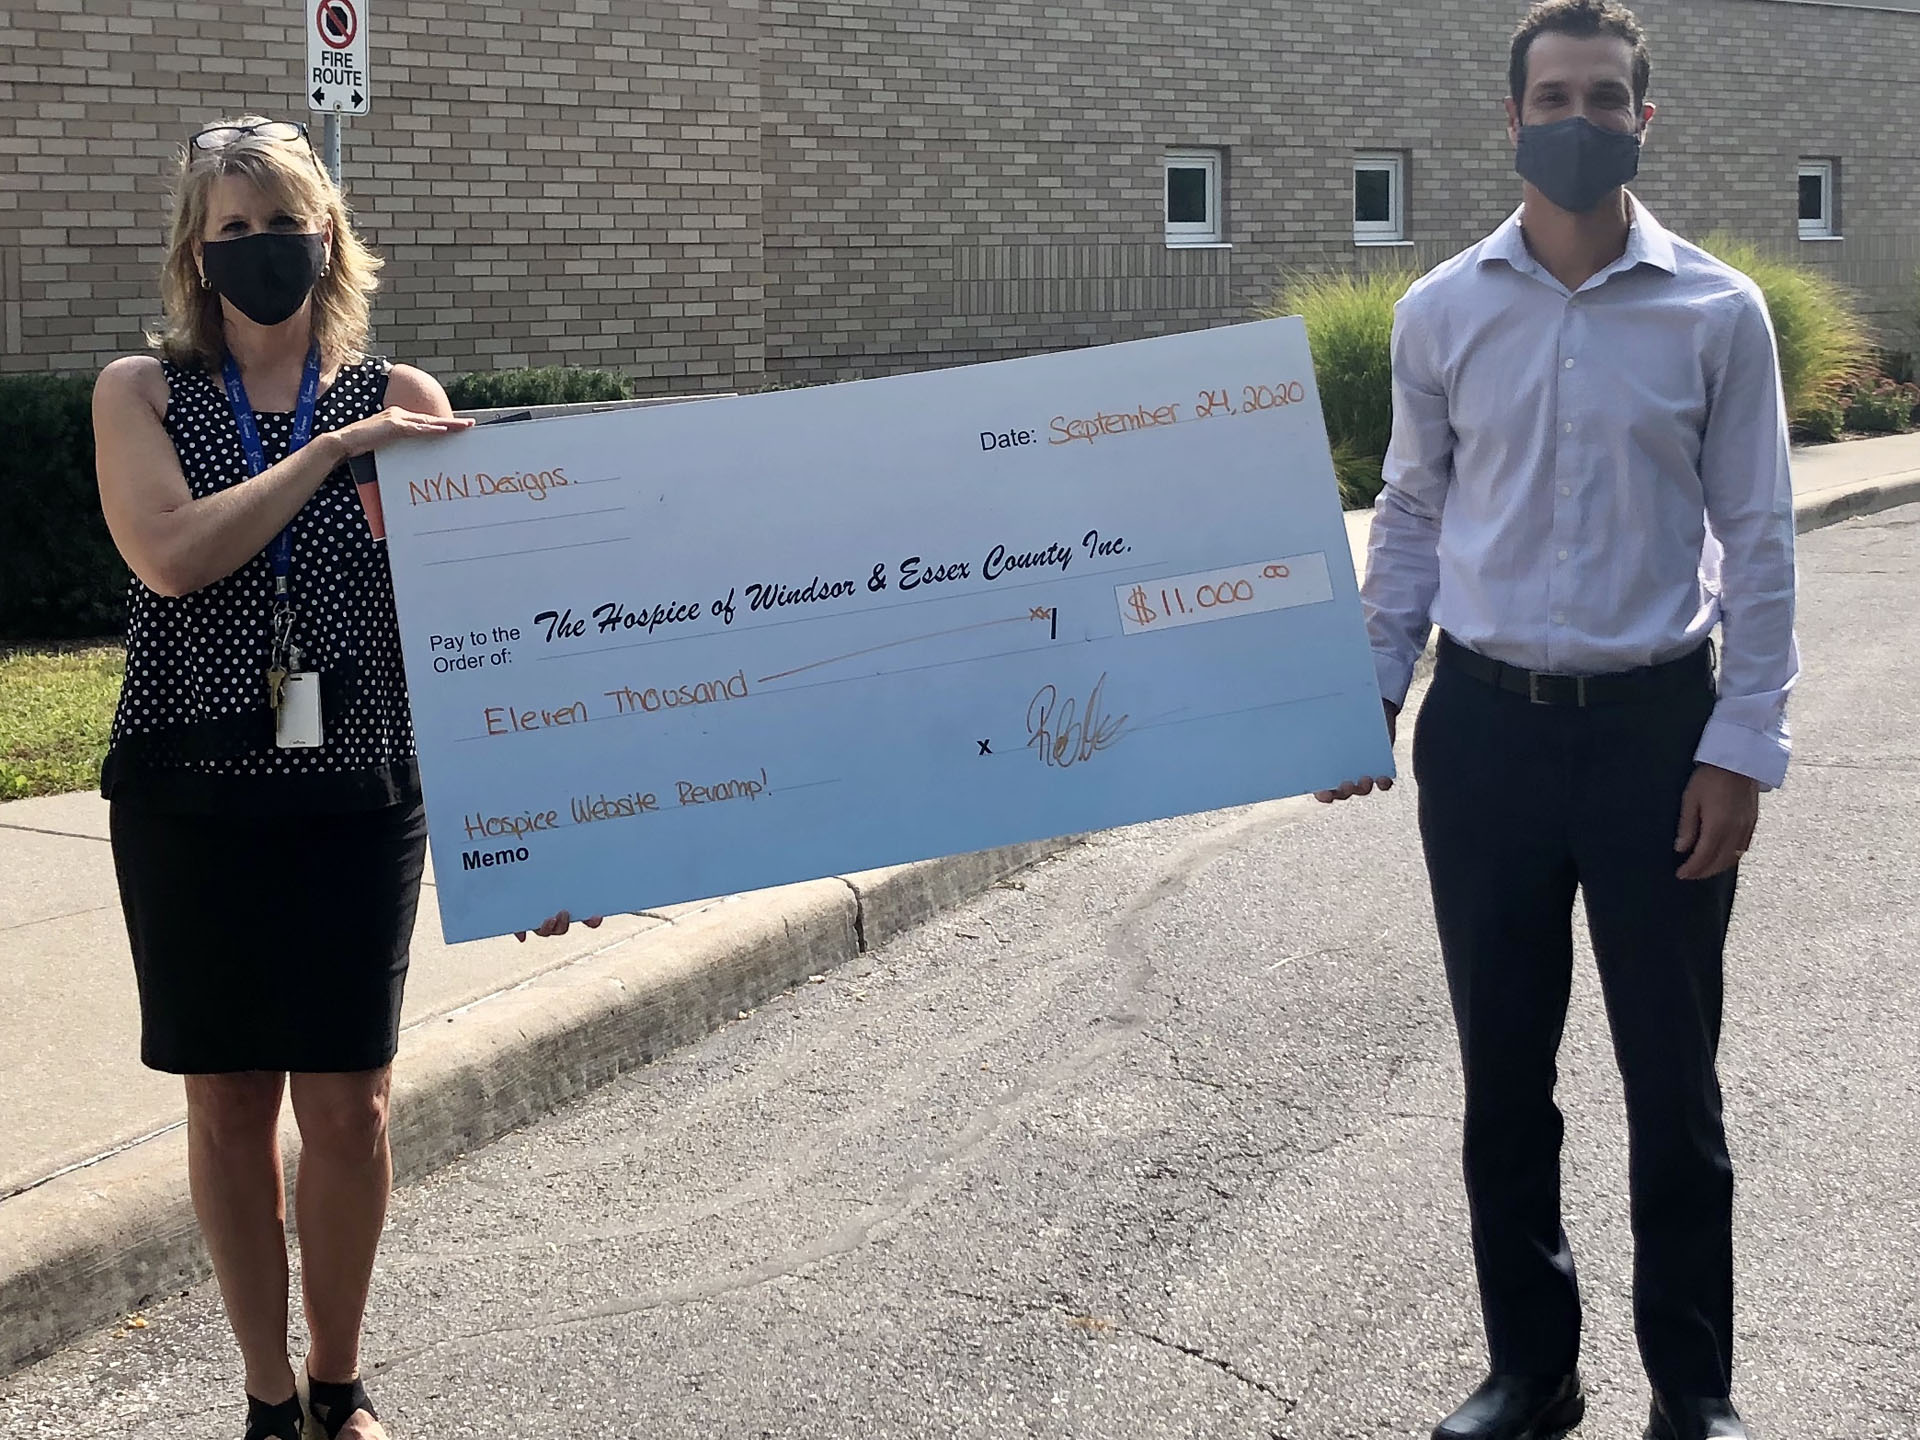 Robert Novena of NYN presenting a donation cheque for $11,000 to The Hospice of Windsor and Essex County